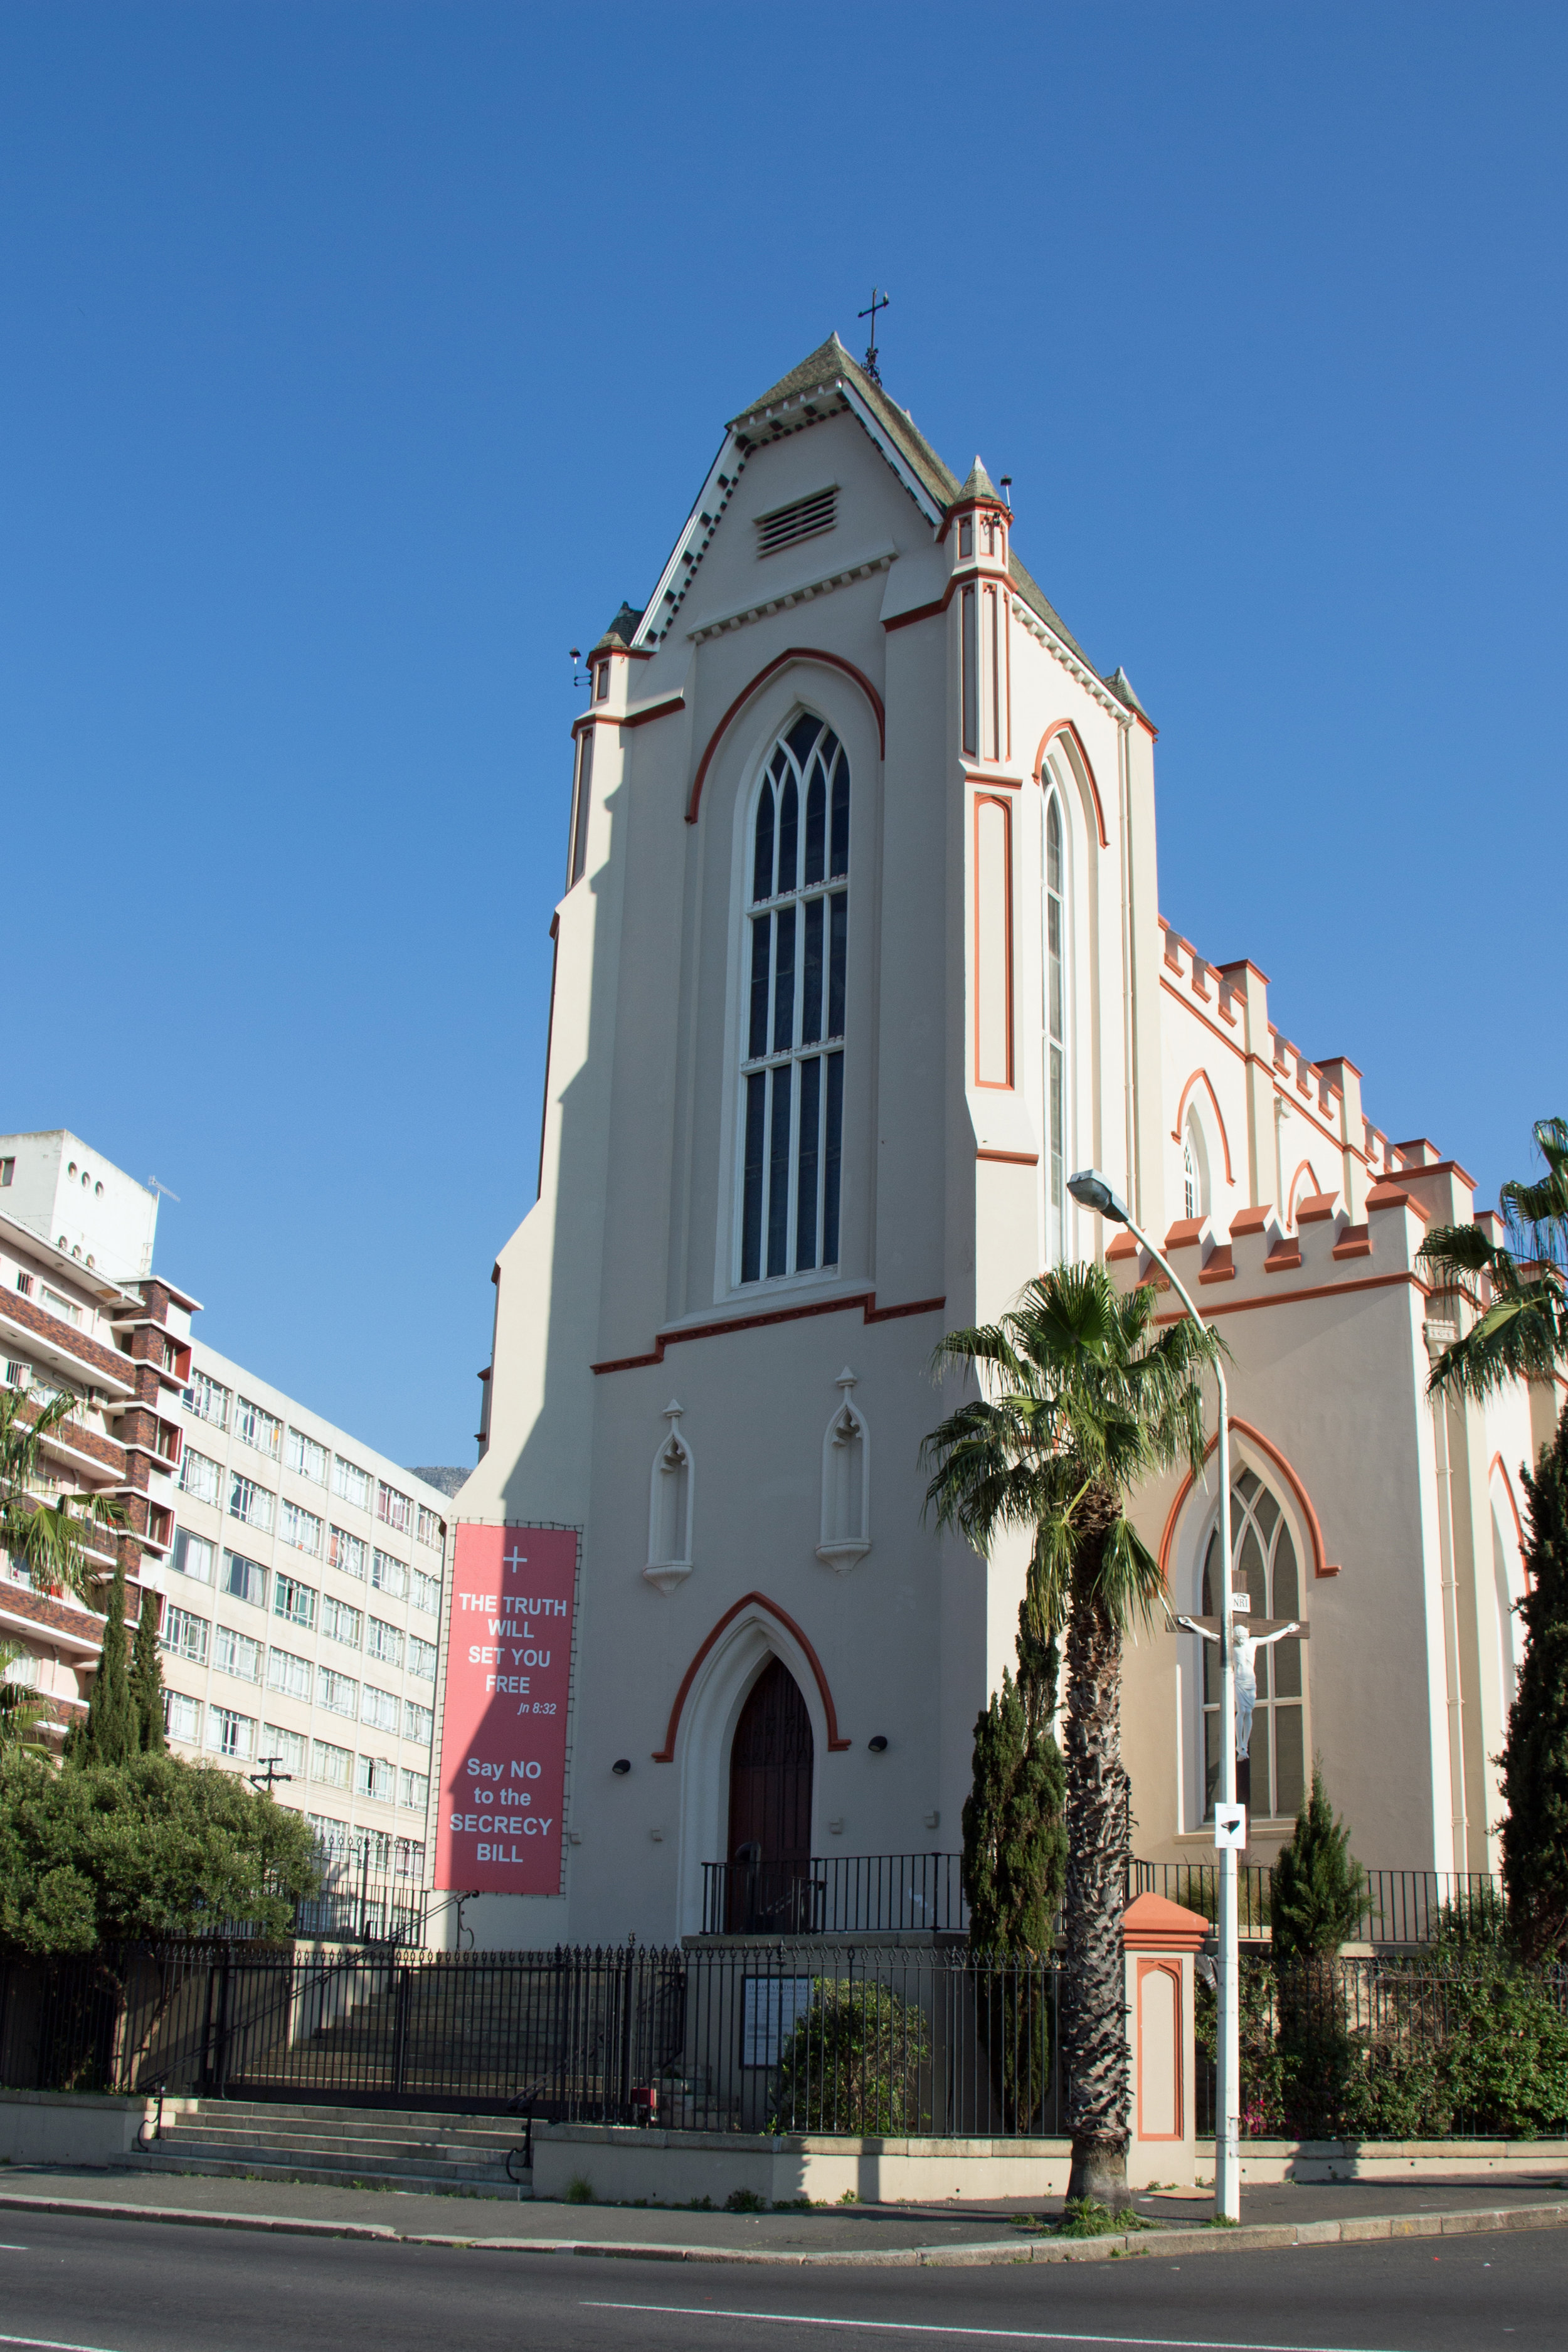 St Mary's Church, Capetown  By HelenOnline - Own work, CC BY-SA 4.0, https://commons.wikimedia.org/w/index.php?curid=36157120